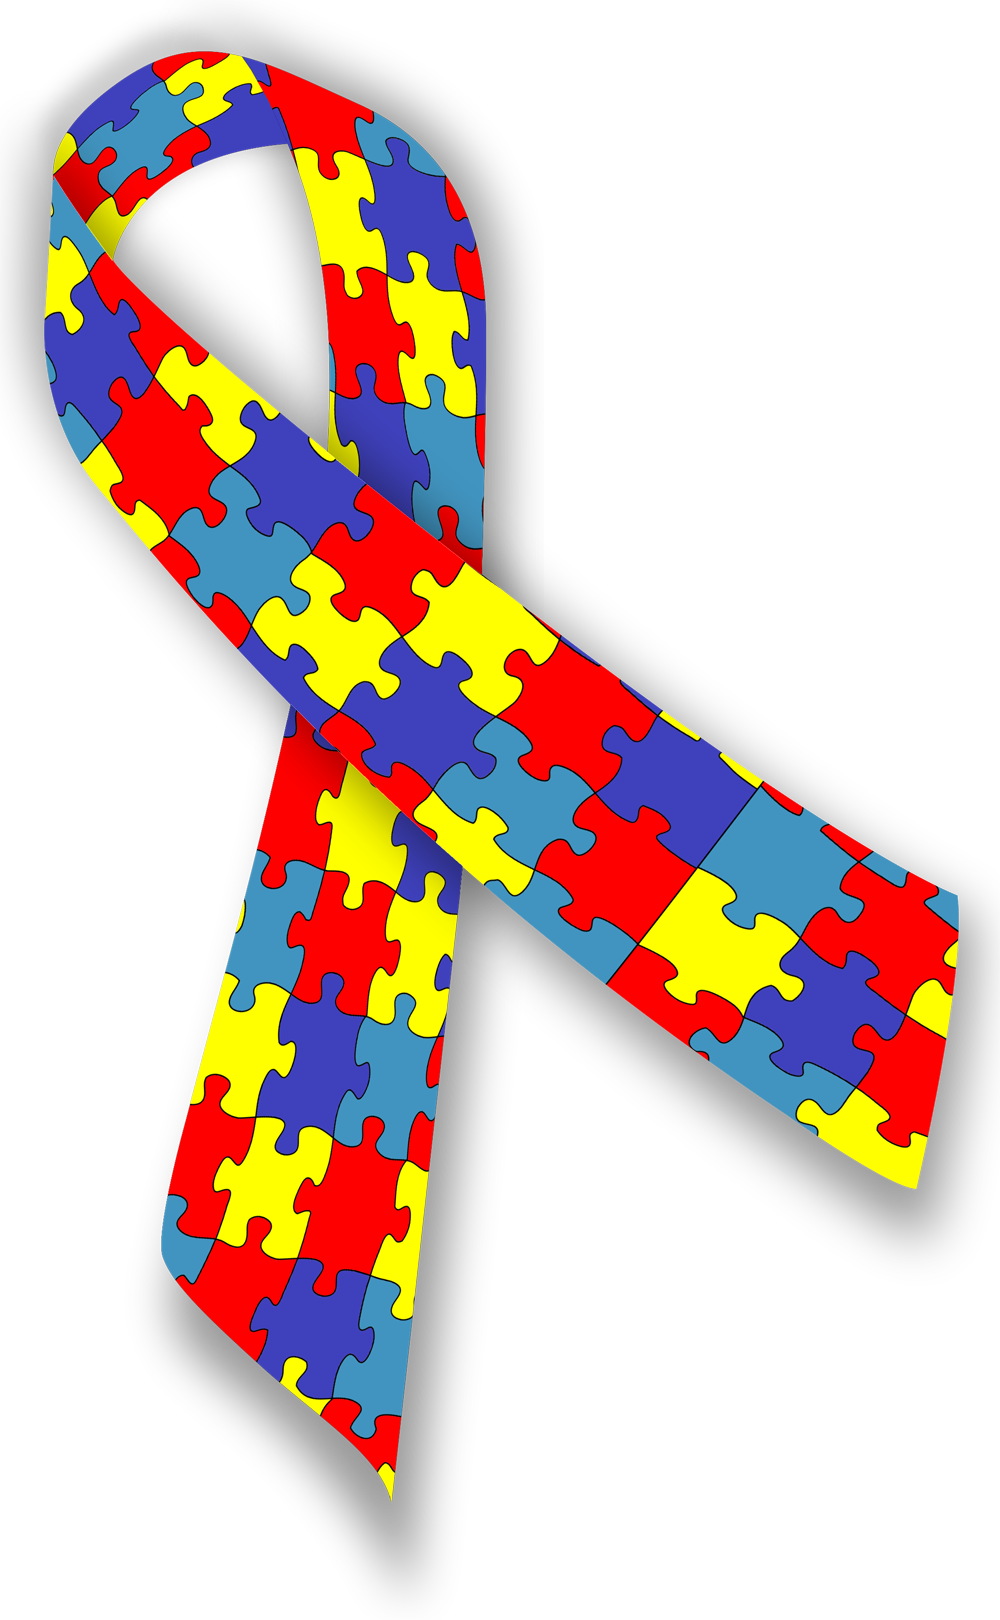 Autism Awareness Campaign UK - Wikipedia, the free encyclopediaautism